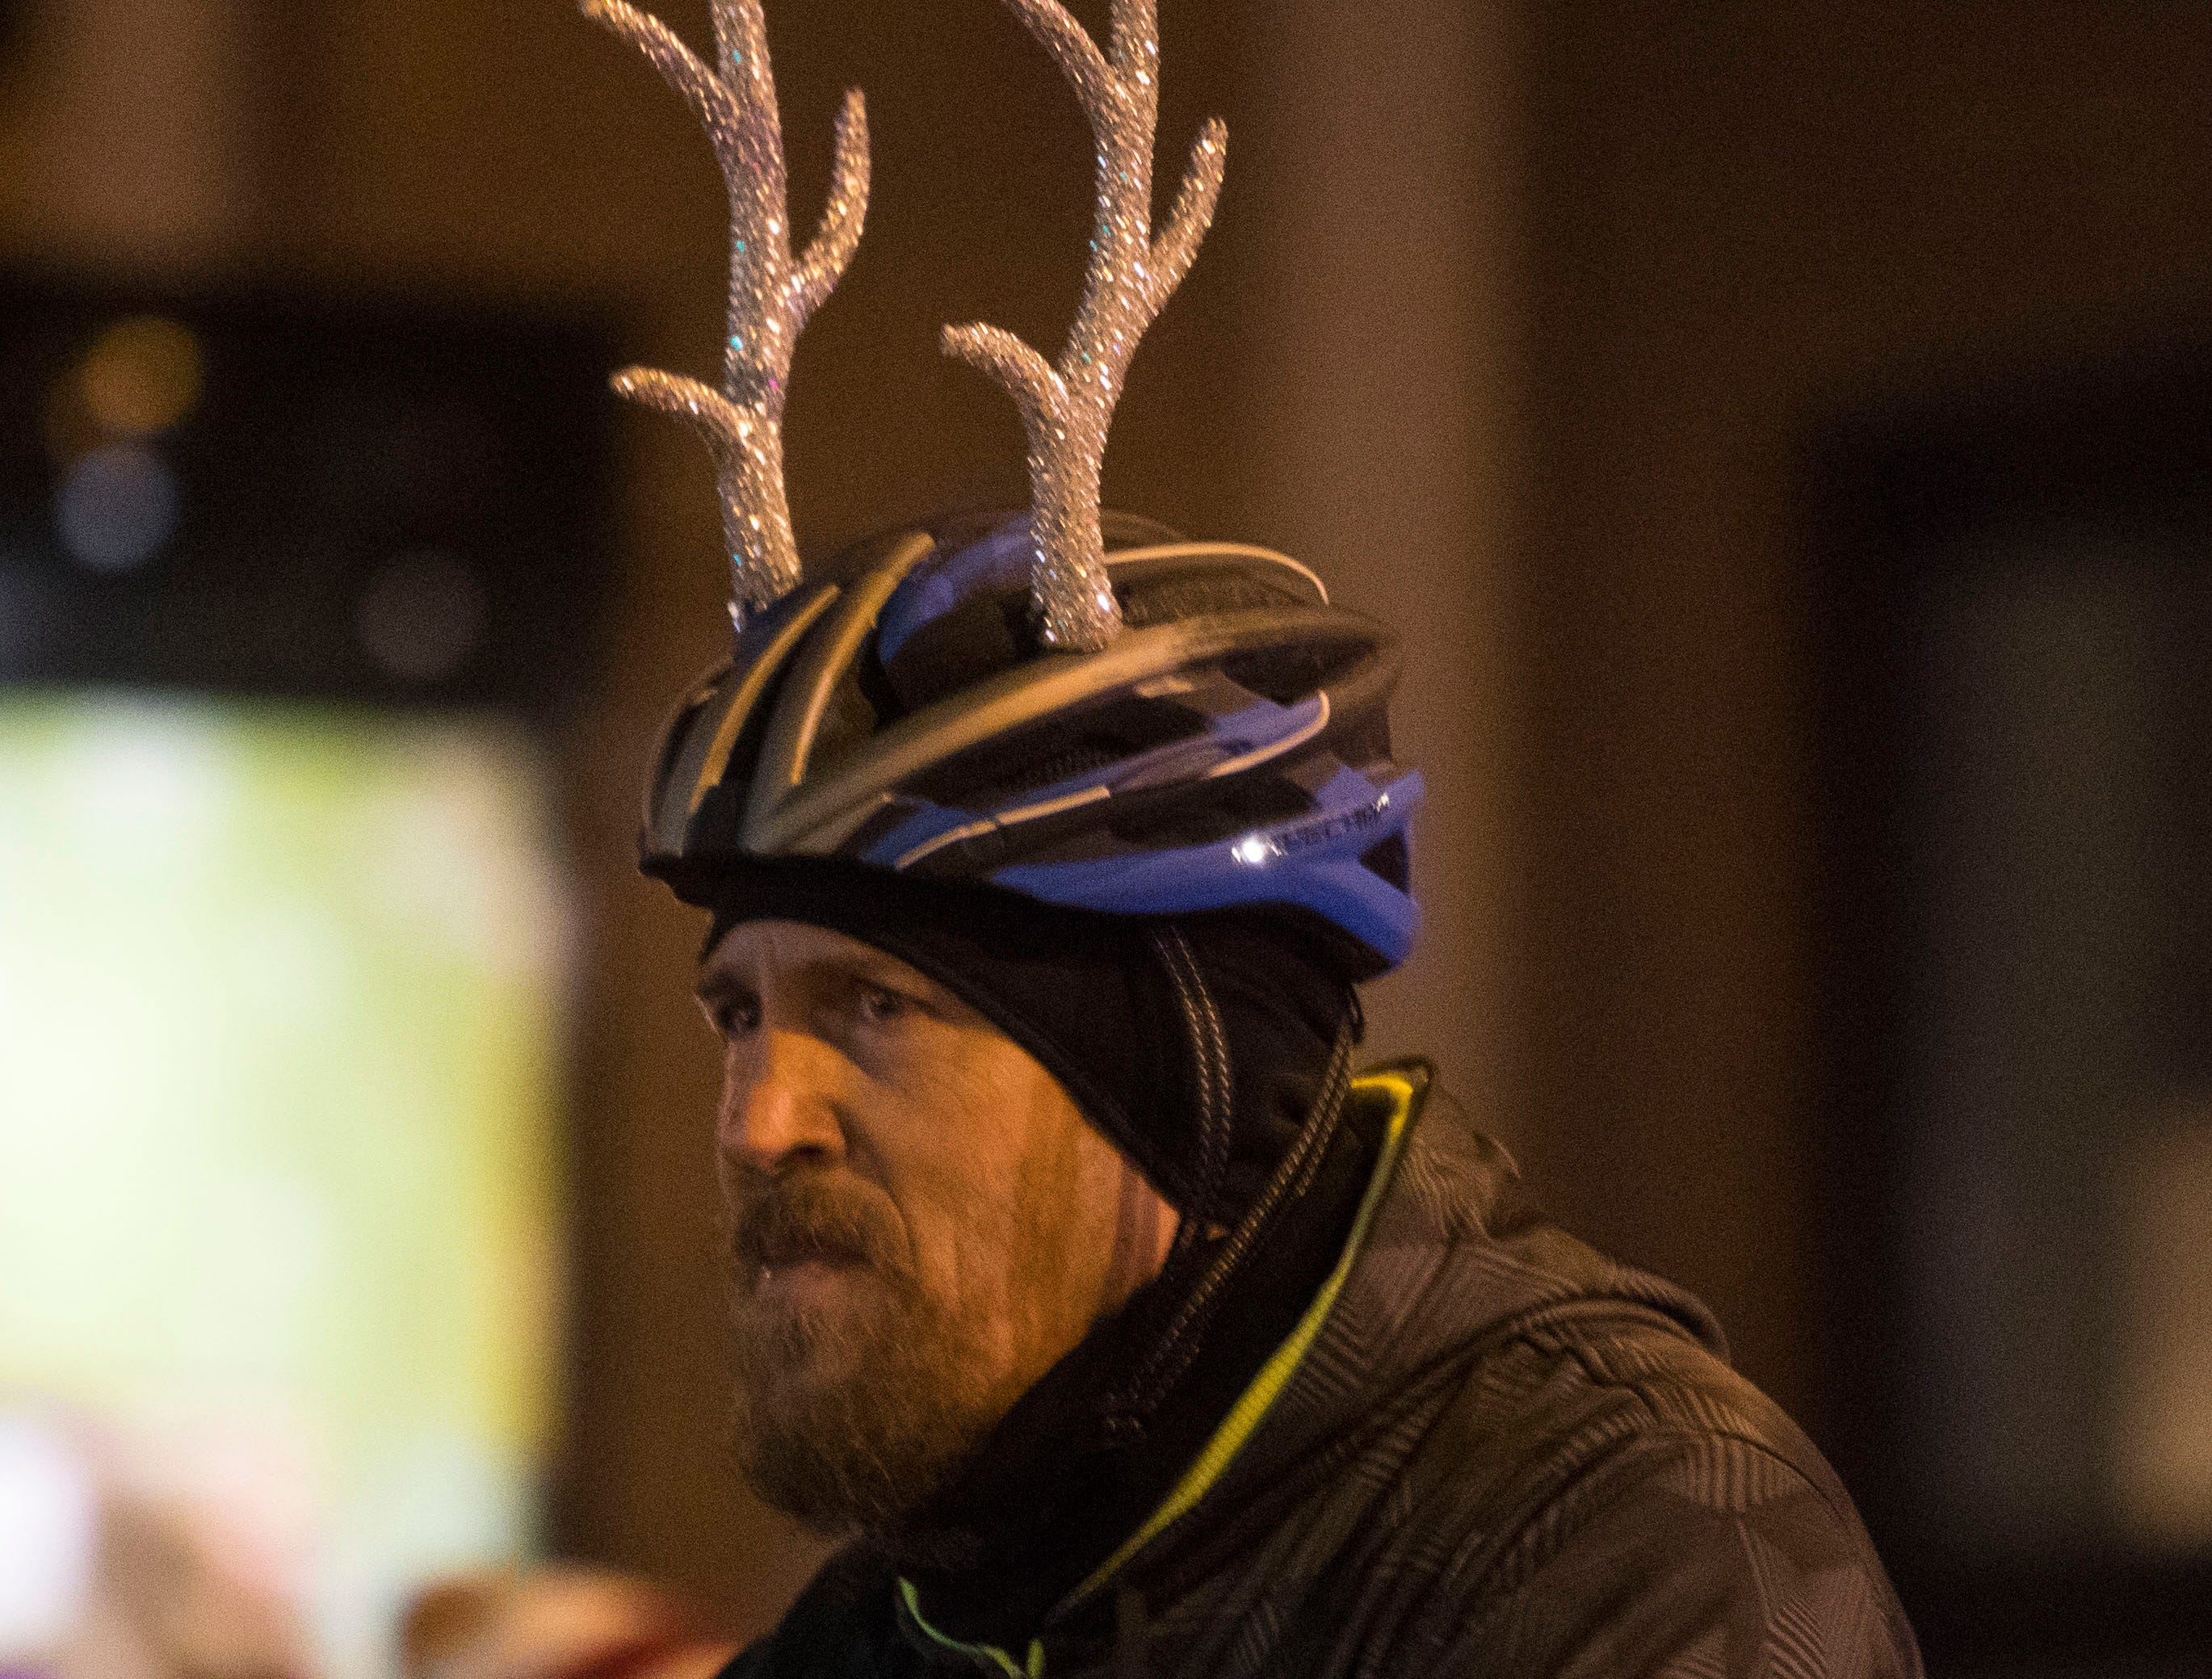 Cyclist participates in the annual Parade of Lights in downtown Sioux Falls, S.D., Friday, Nov. 23, 2018.